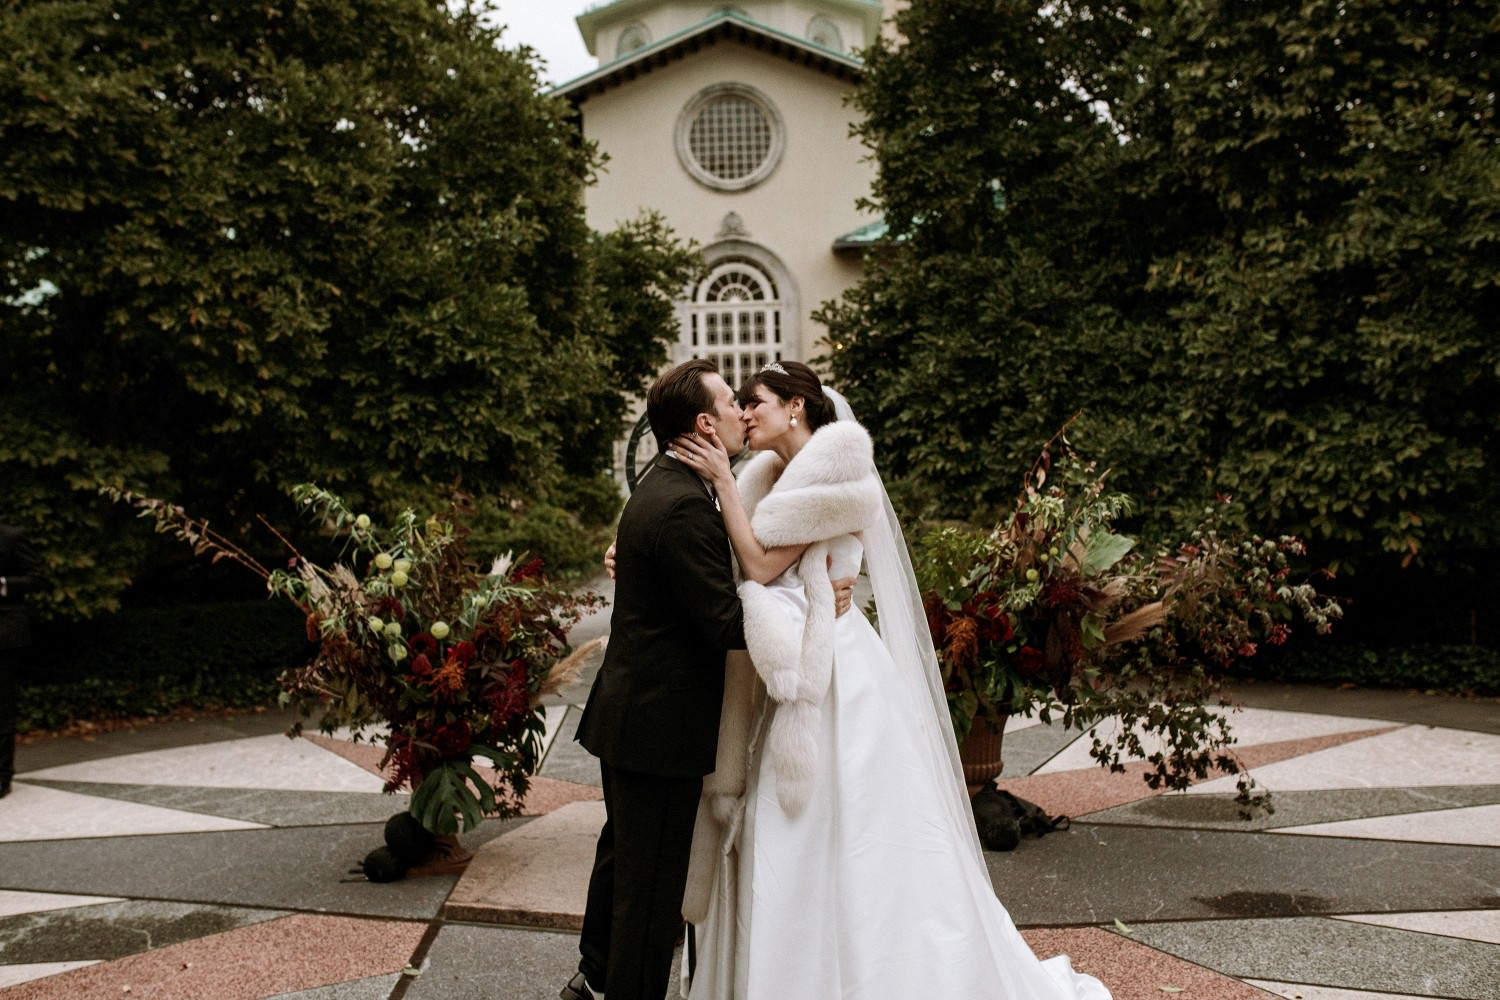 Wedding photography - Couple's first kiss after their wedding vows at the Brooklyn Botanic Garden